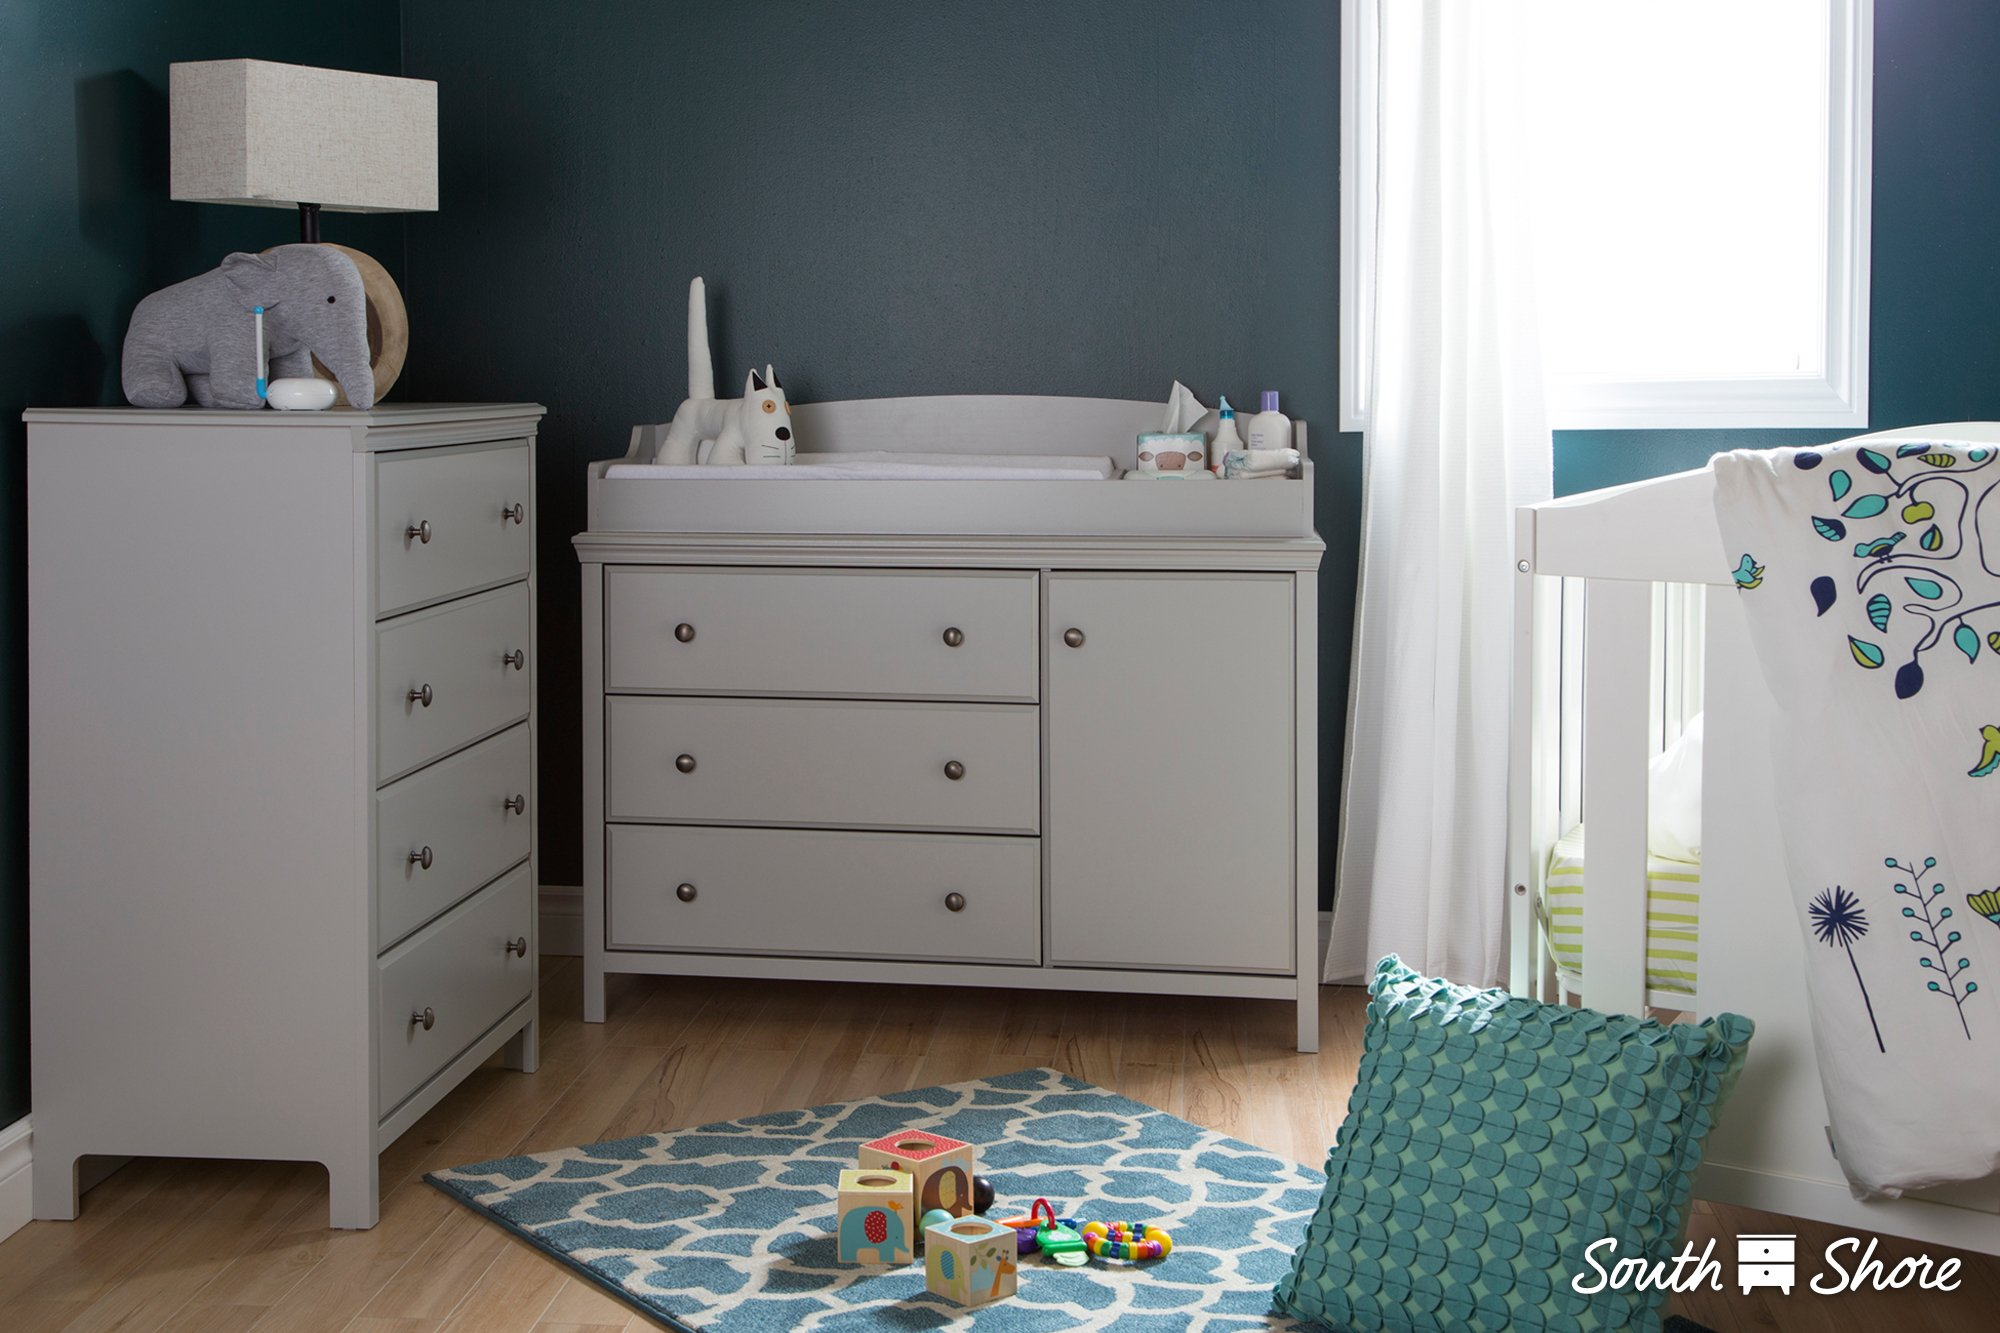 South Shore Cotton Candy Changing Table with Removable Changing Station, Sumptuous Cherry by South Shore (Image #3)